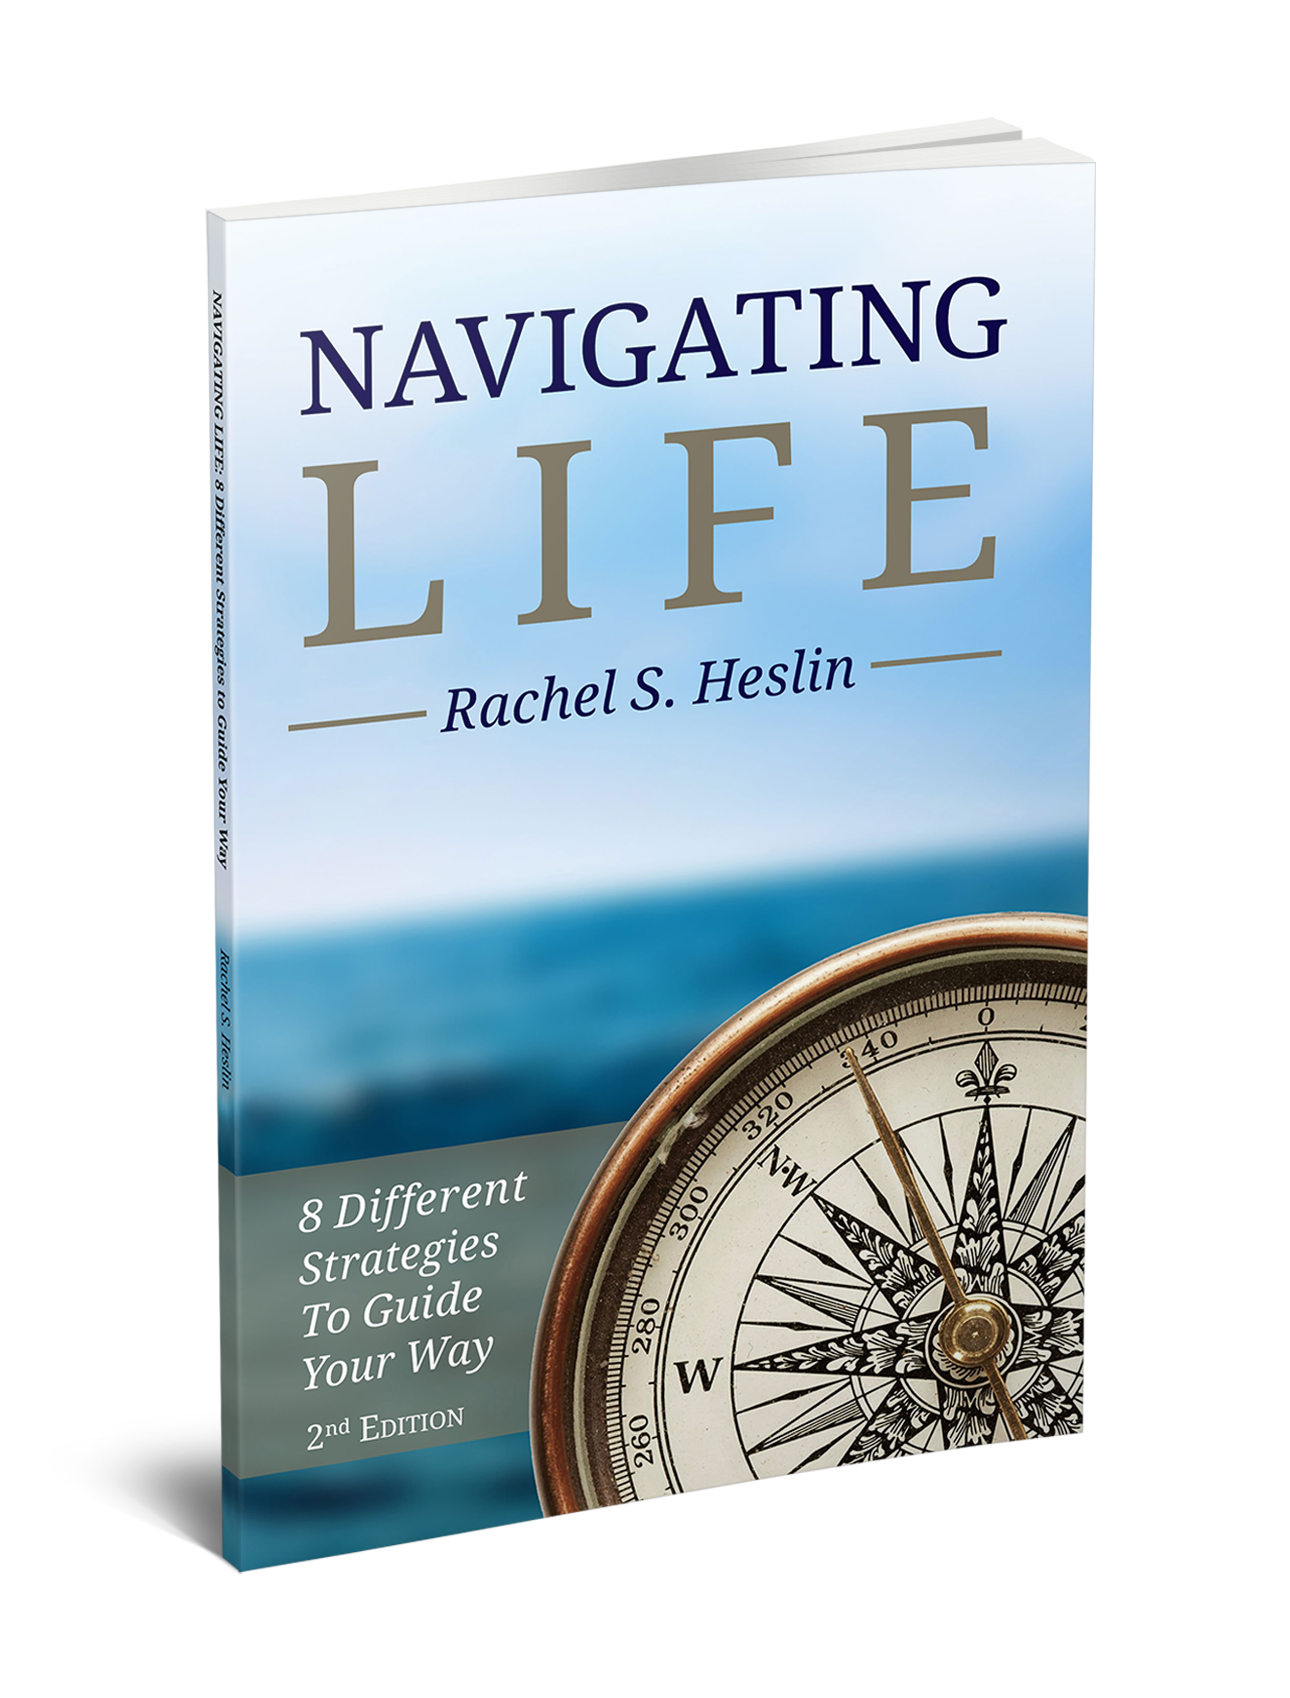 Navigating Life: 8 Different Strategies to Guide Your Way, 2nd Ed.